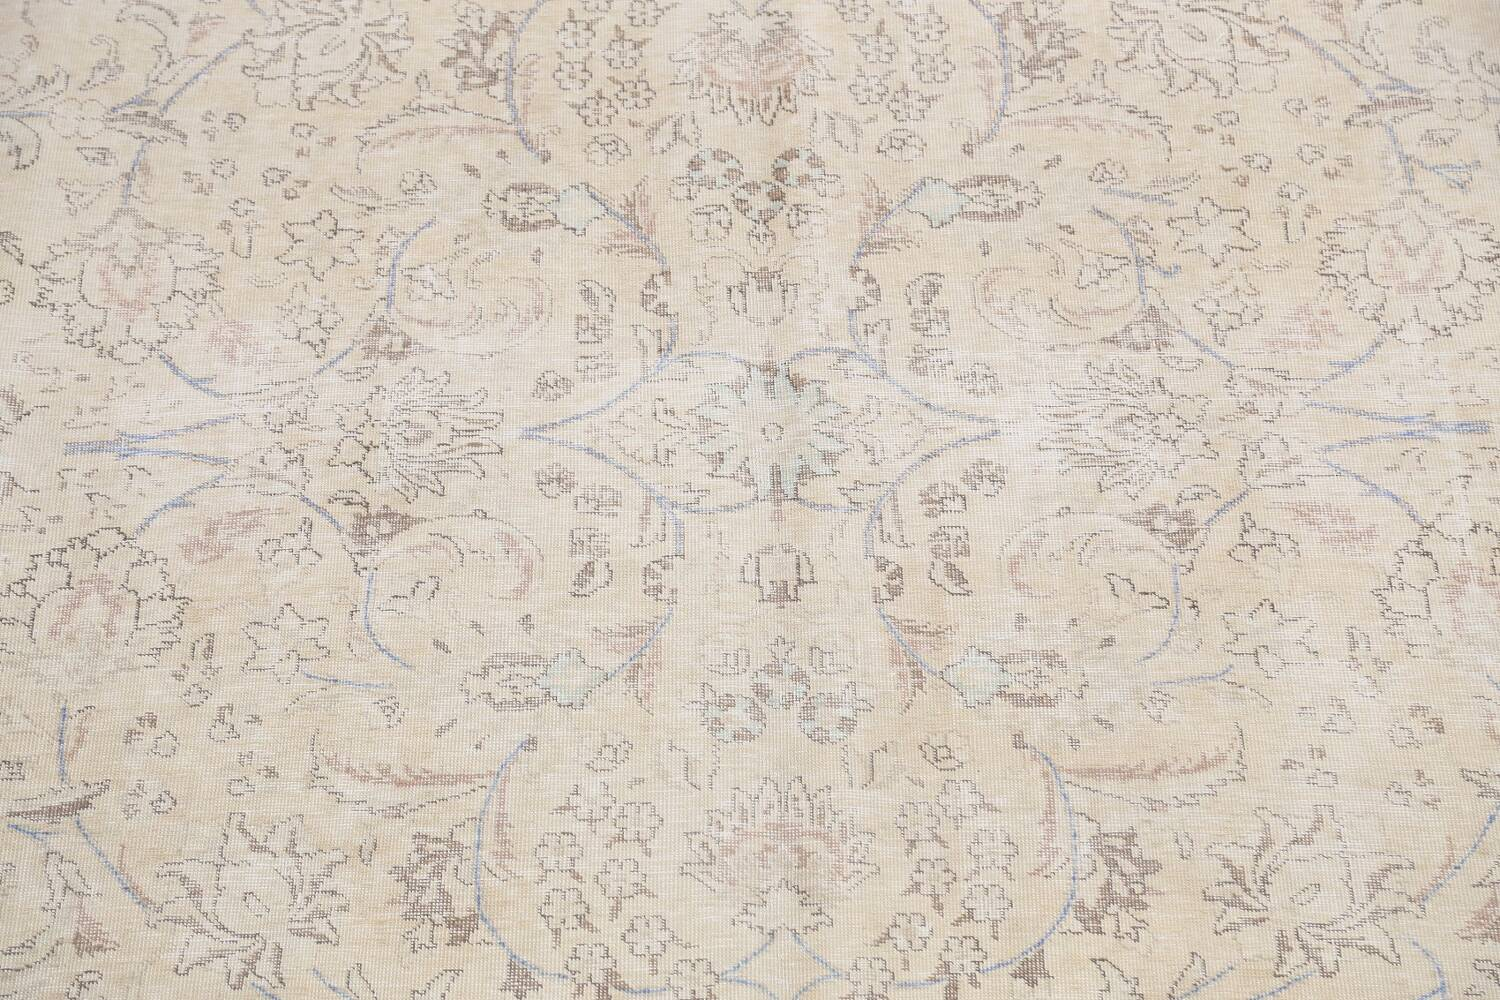 Antique Distressed Floral Tabriz Persian Area Rug 9x11 image 4